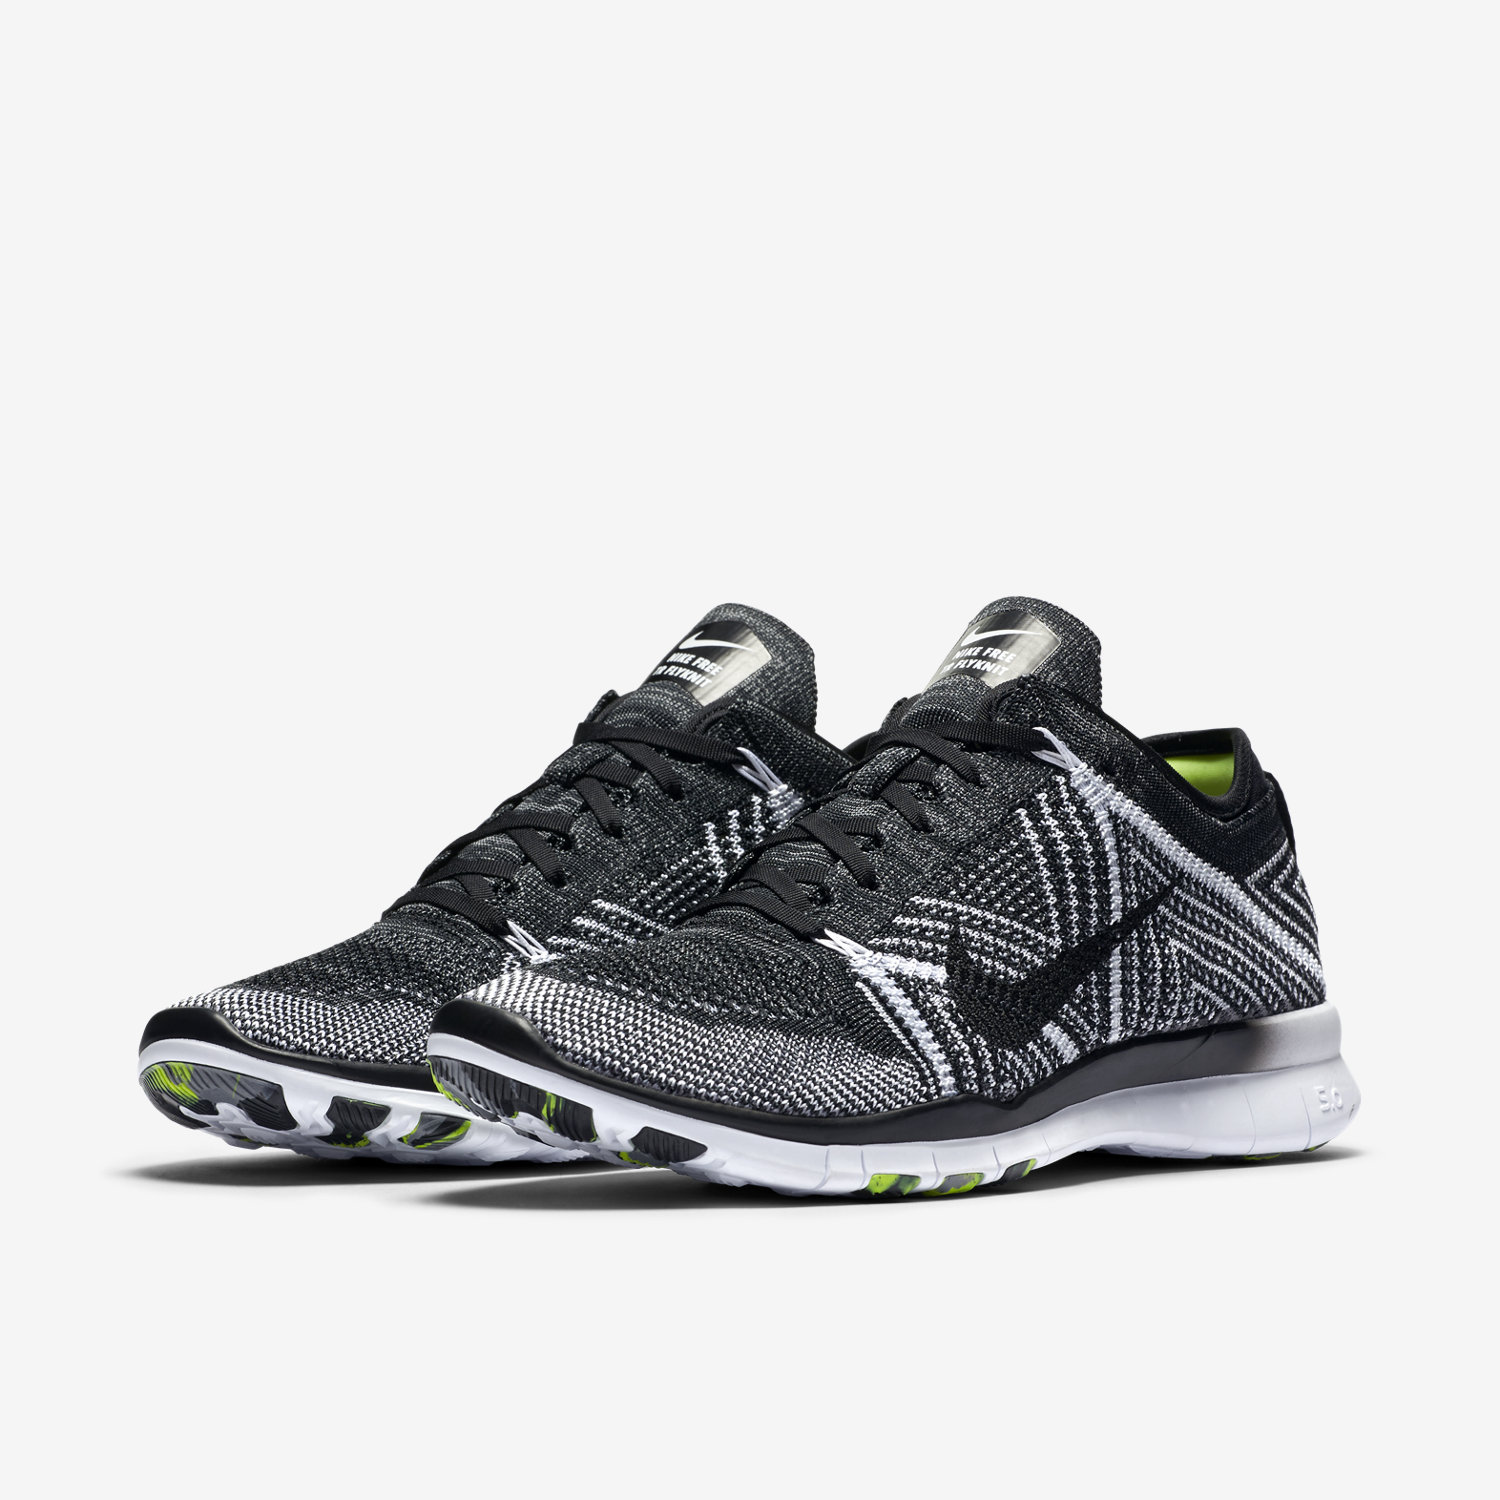 nike air max 2003 argent - Chaussure de training Nike Free TR 5 Flyknit pour Femme. Nike.com CH